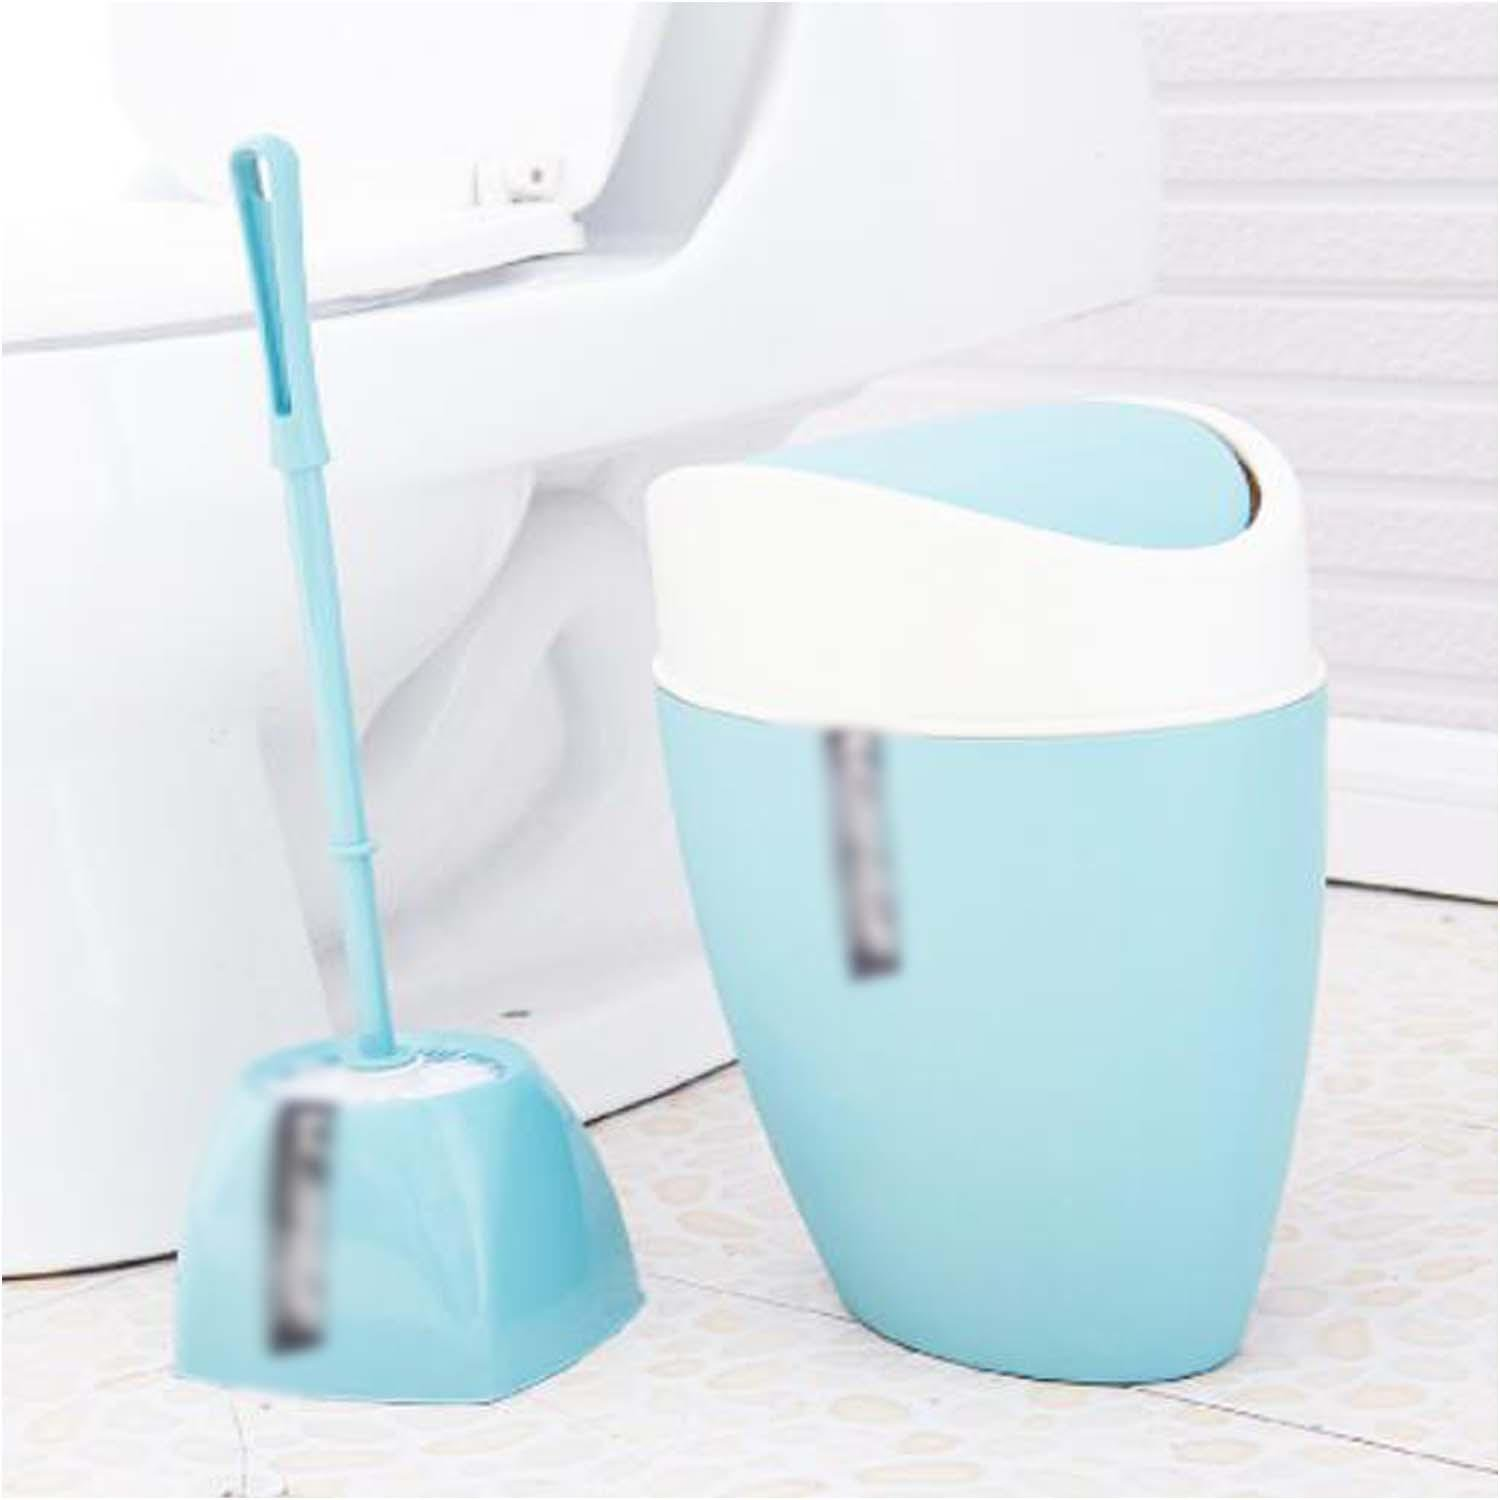 OOFYHOME Shaking trash cans, creative toilet trash cans toilet brush set, covered trash cans , A